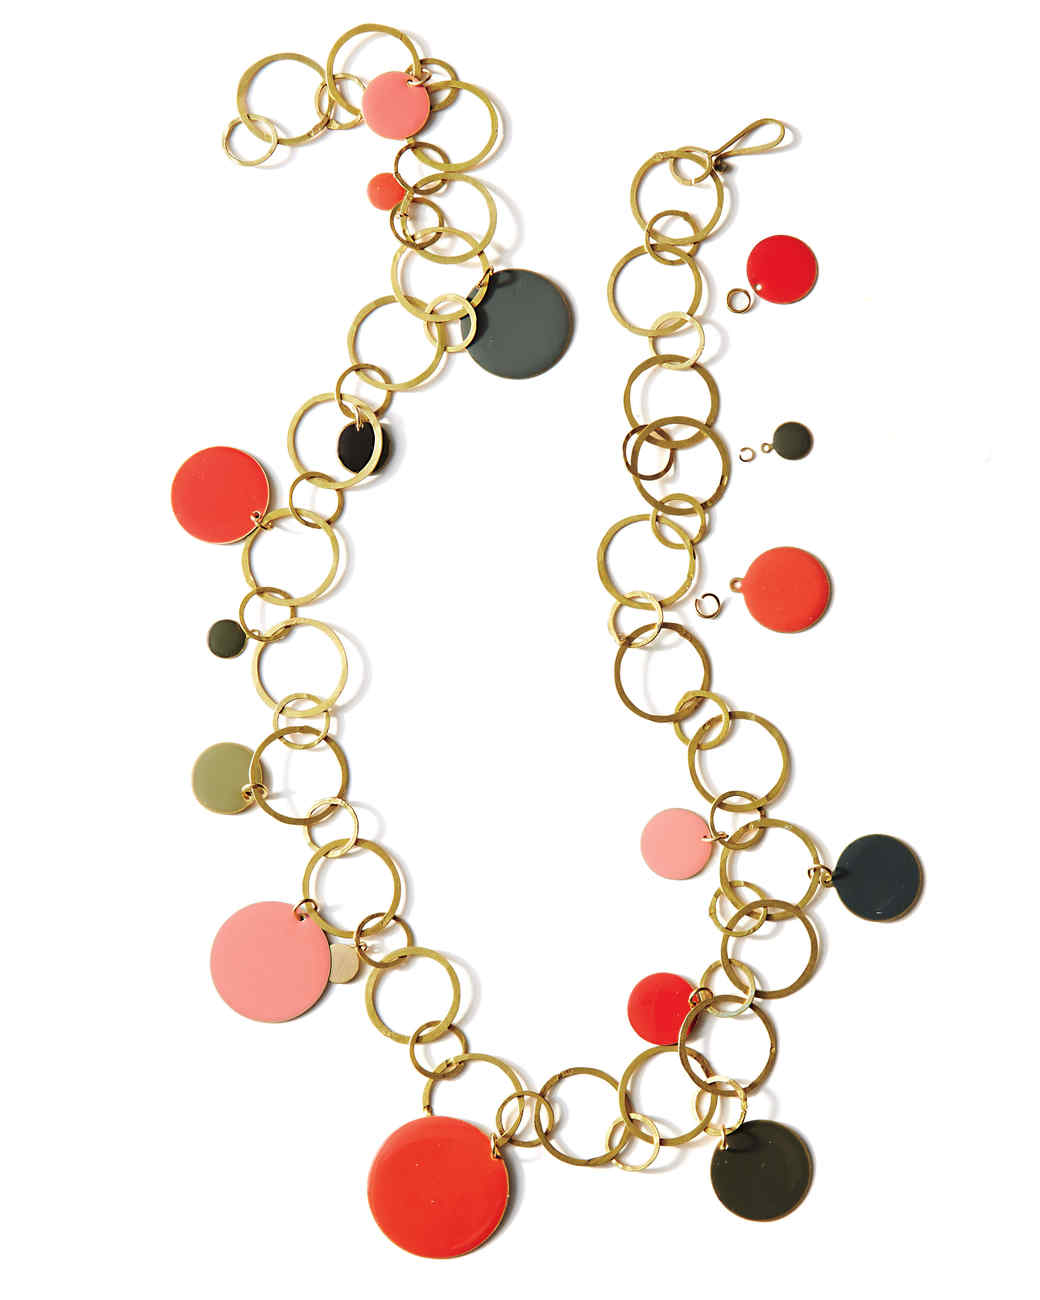 opener-option-one-necklace-041-1-mld110721.jpg